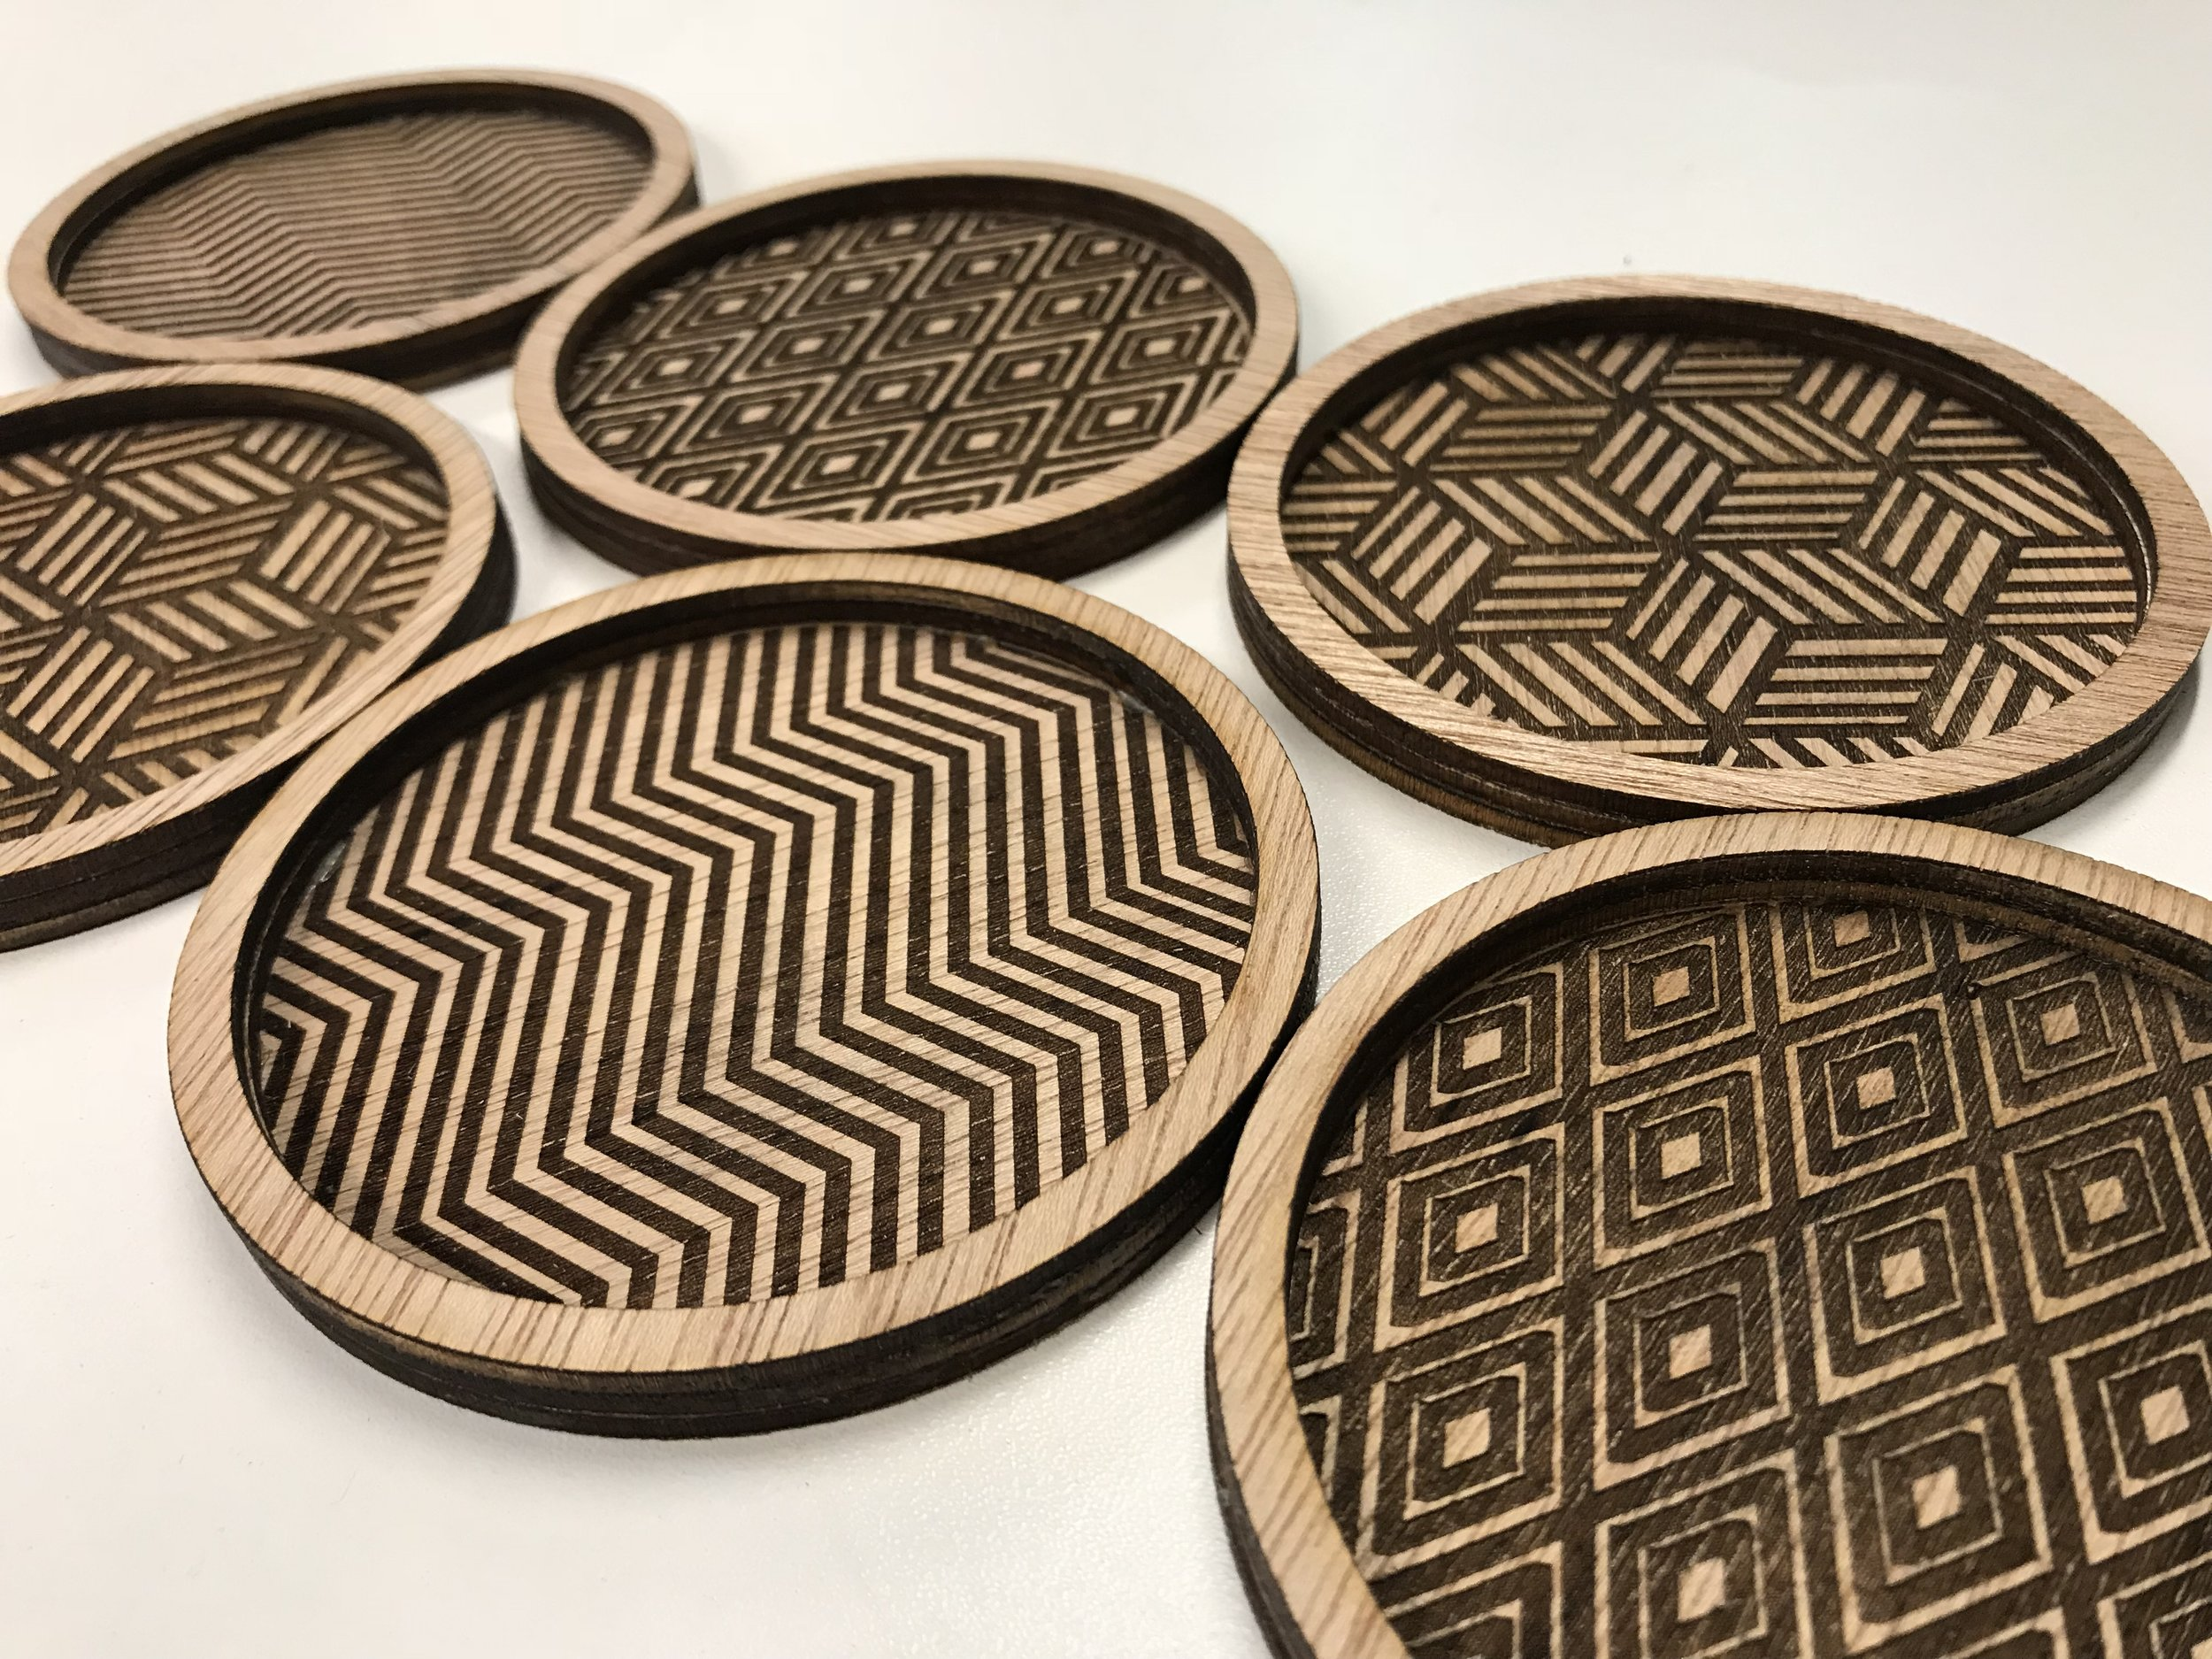 Completed Coasters